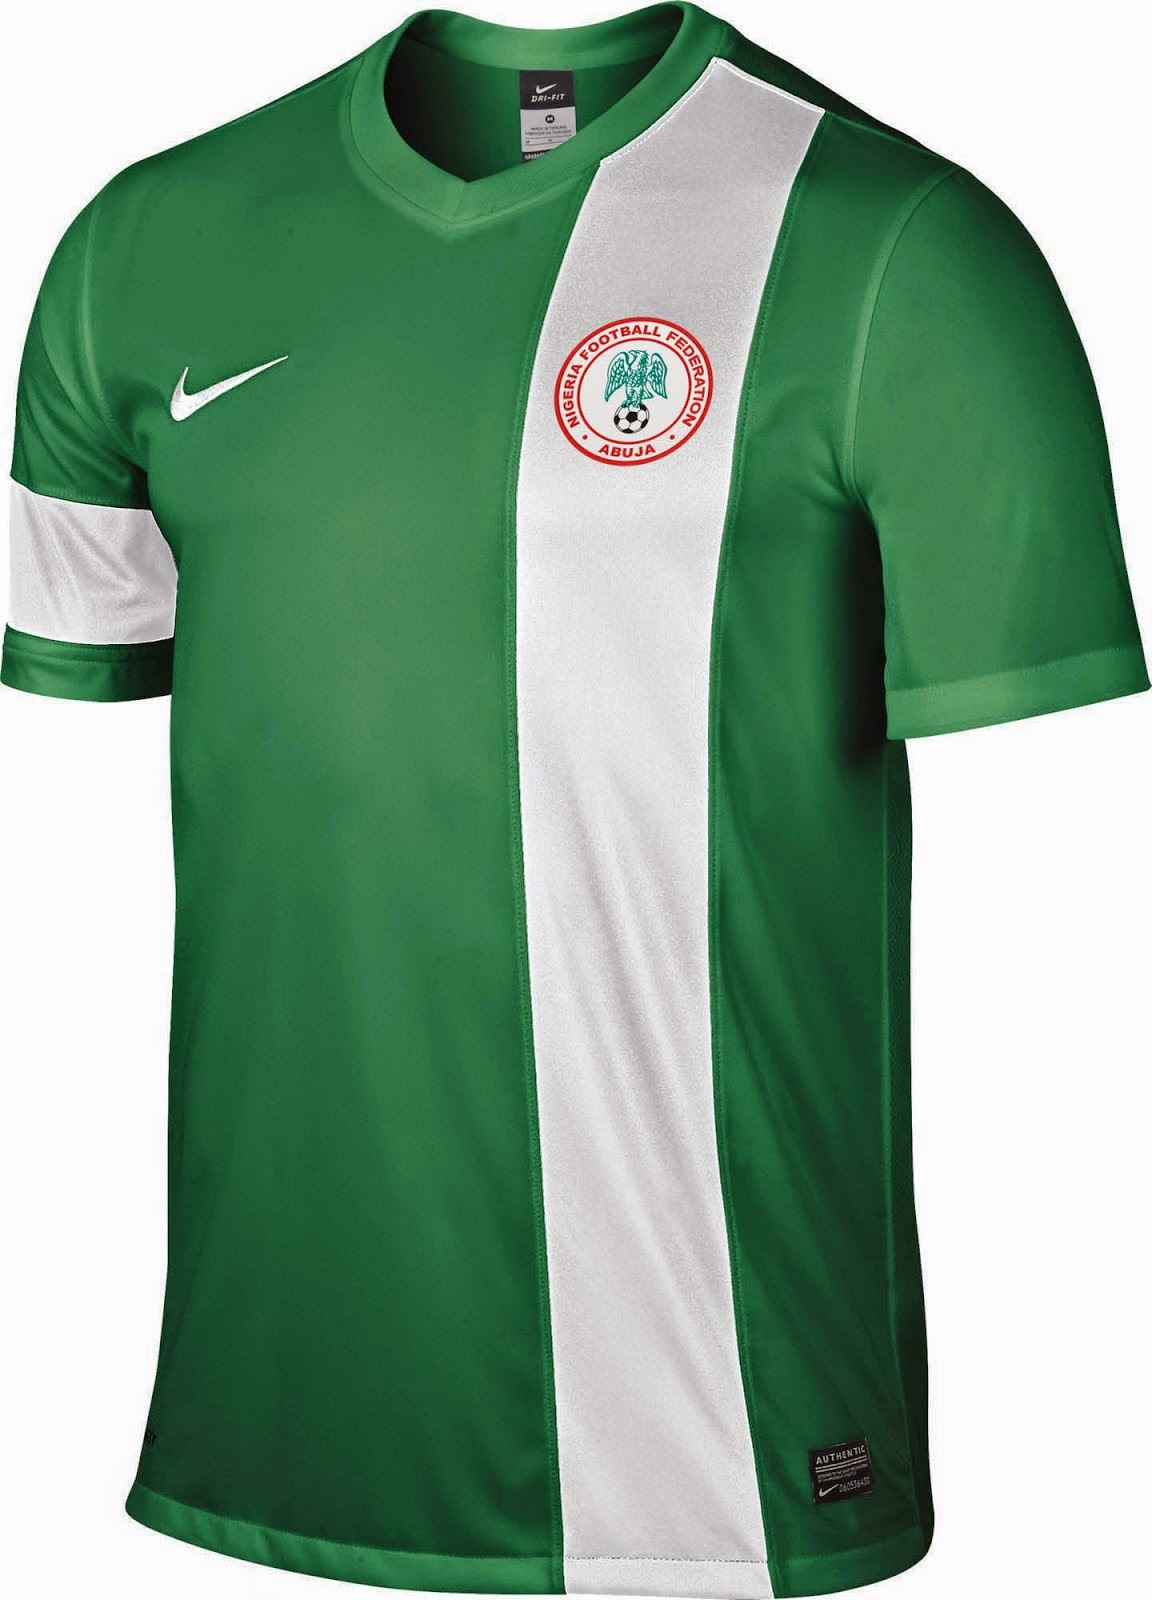 88aafb60b254 design your own nike football jersey--Friends of Peru